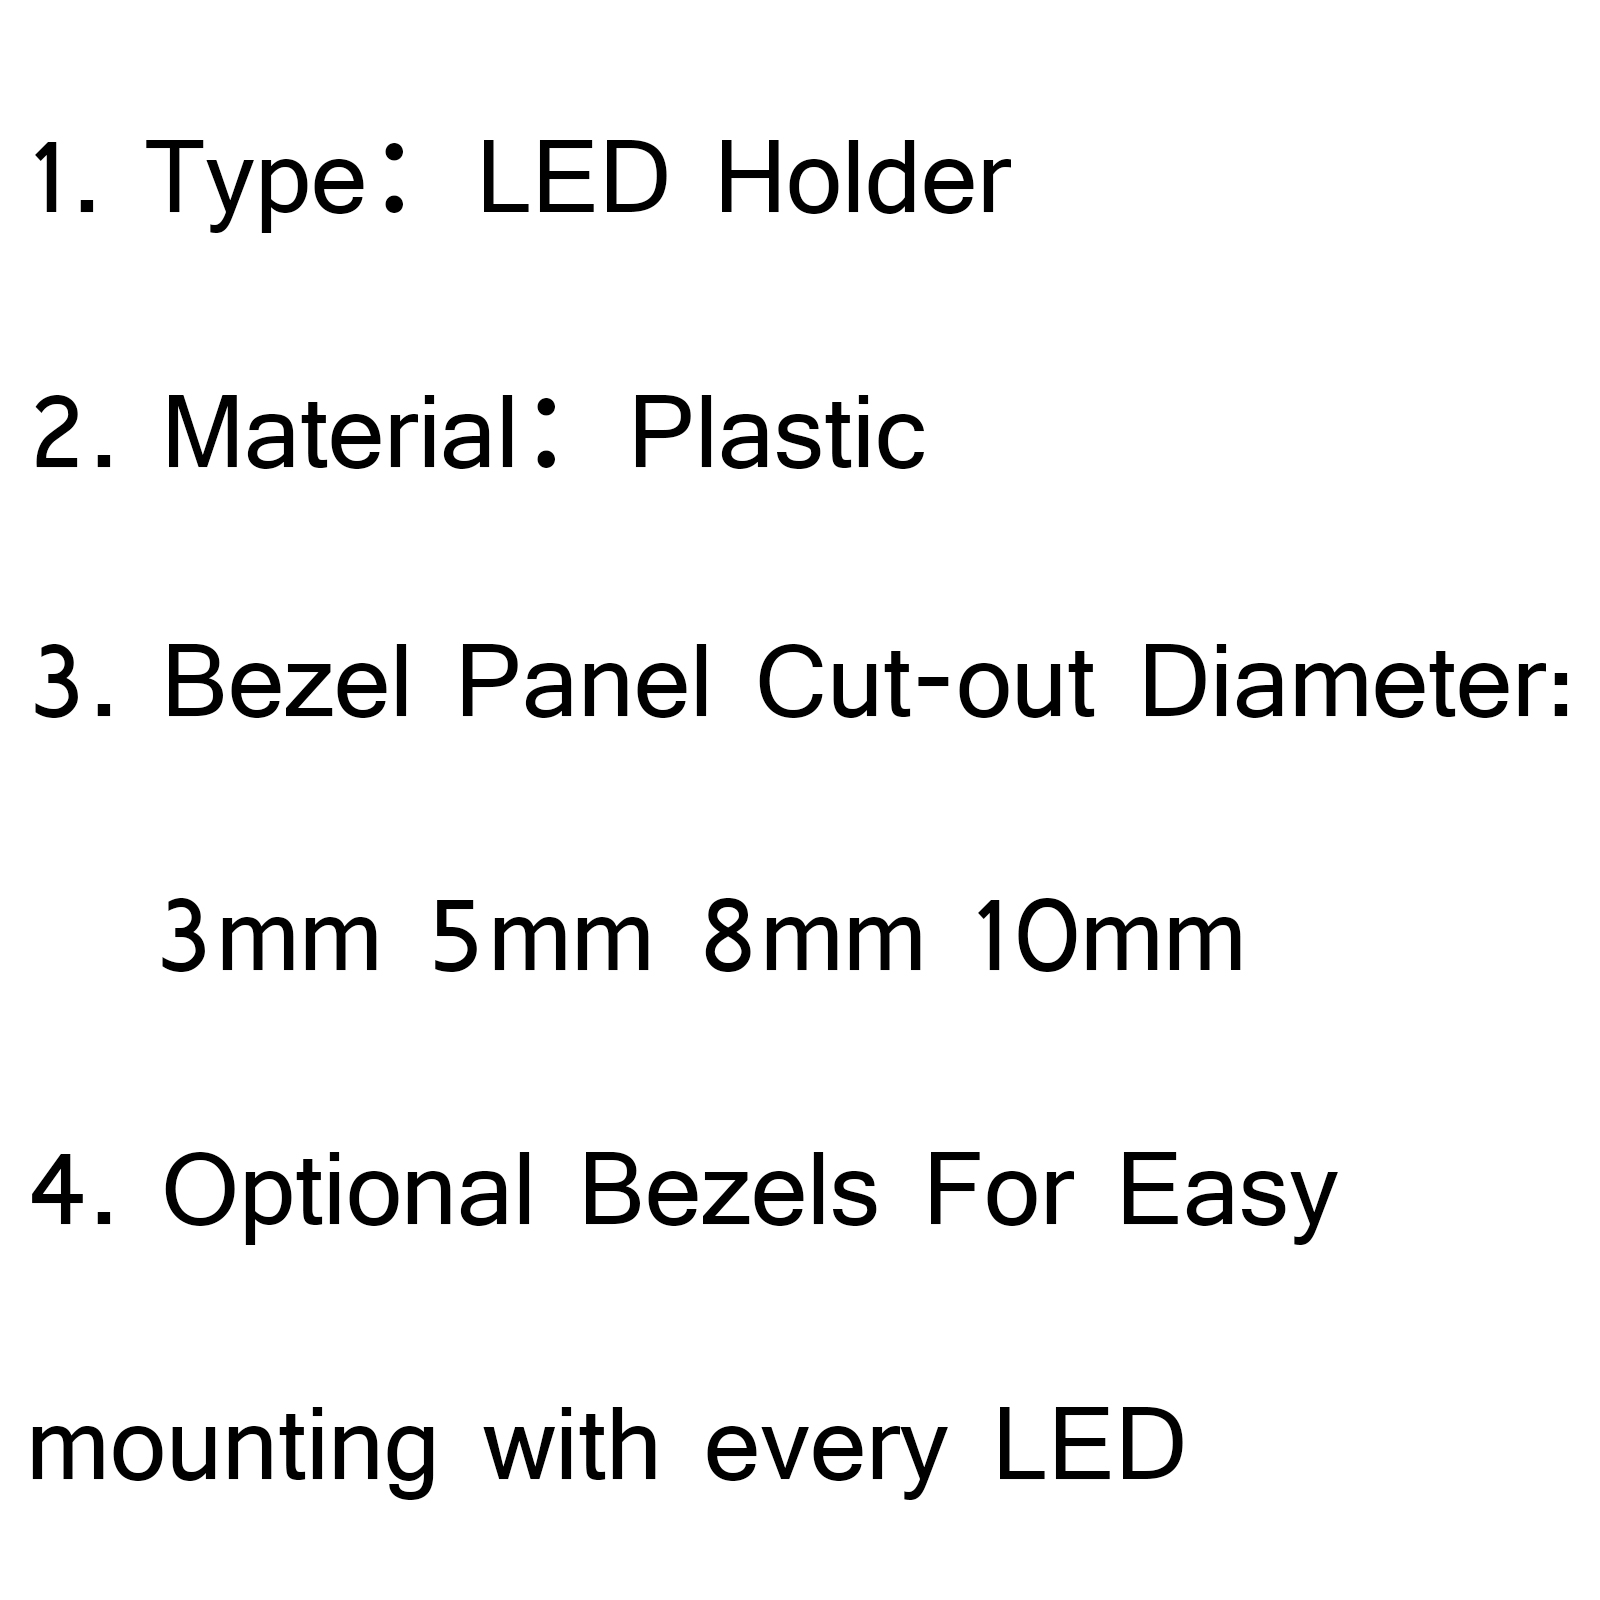 Pcs 8mm Led Holder Light Lamp Diode Plastic Bezel Sleeve Base Holders Bs5 B5